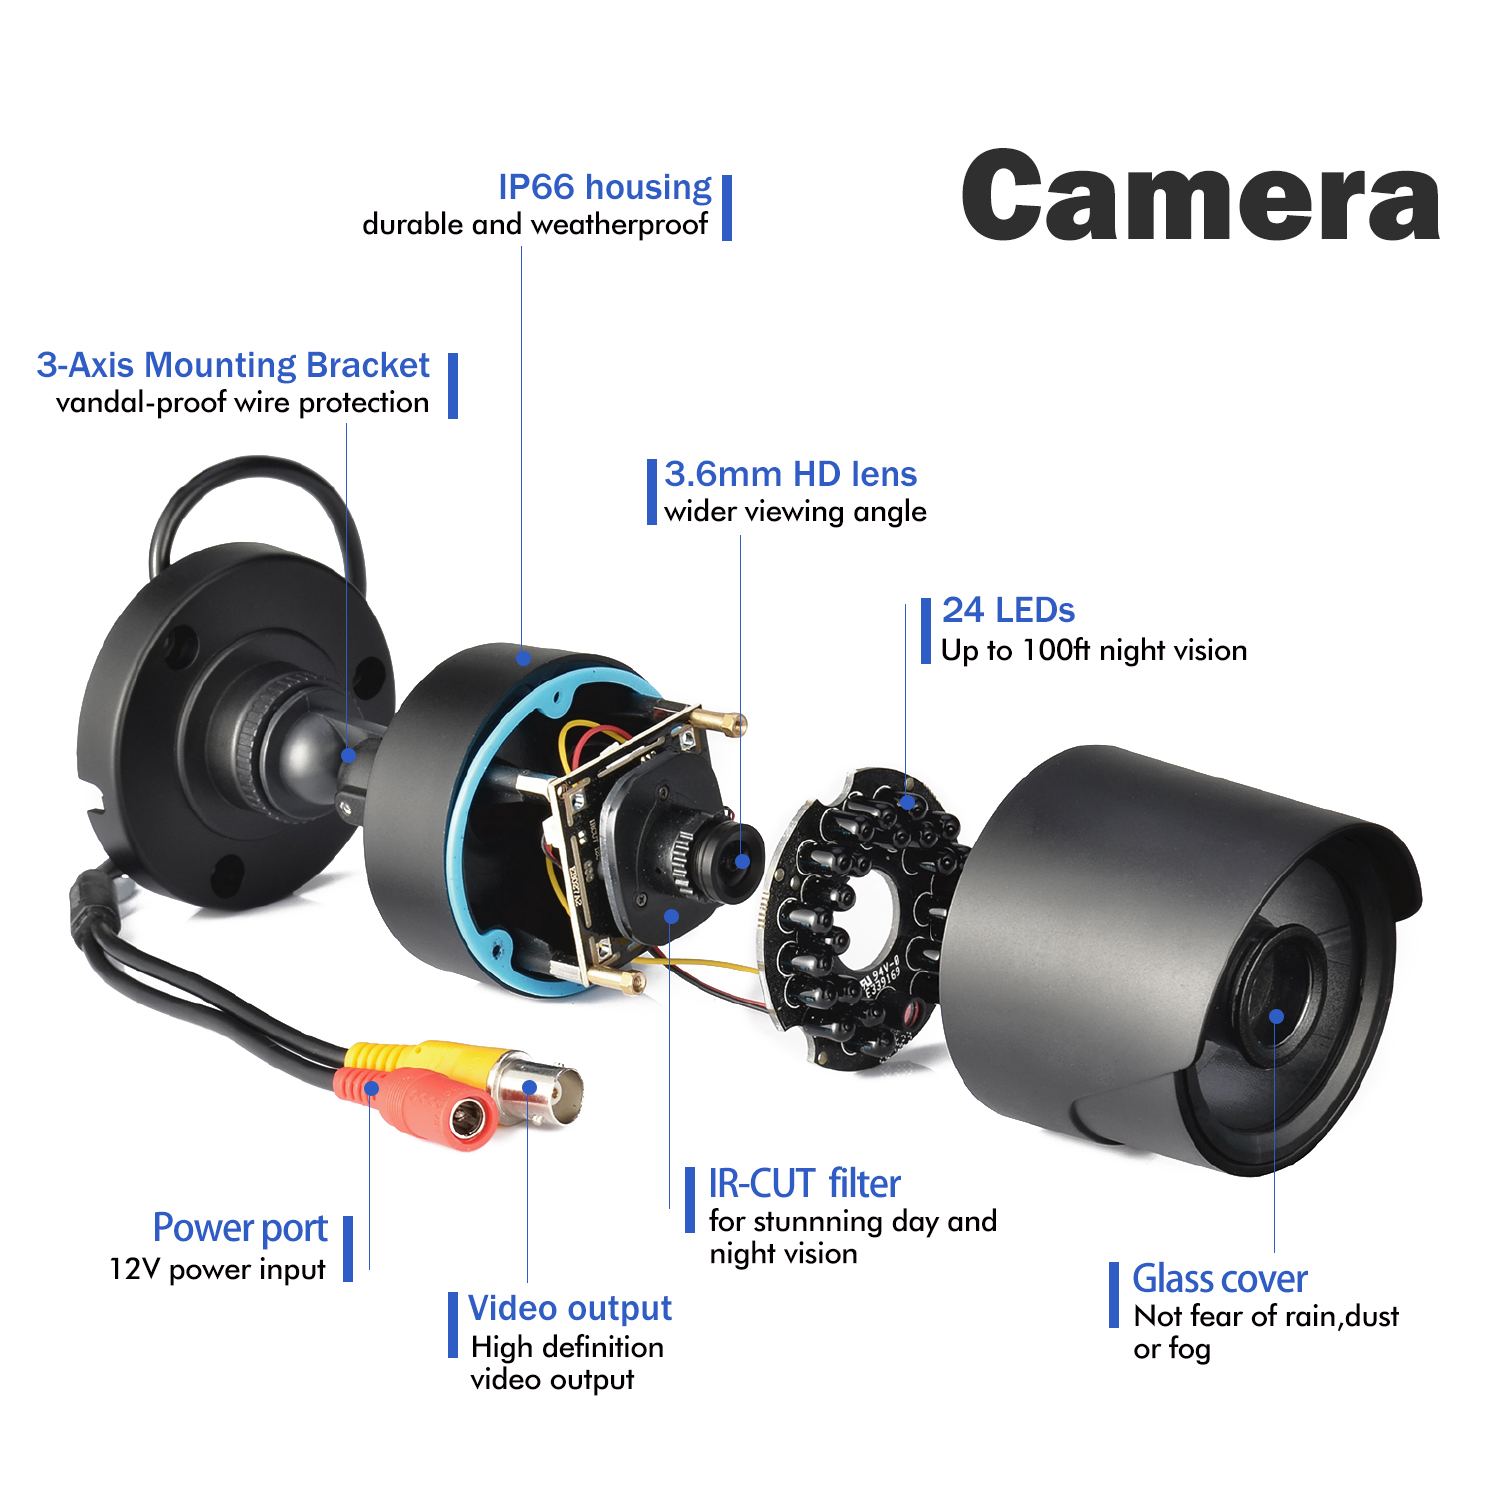 Ir C71k Security Camera Wiring Diagram Night Vision Just Schematic Rh Lailamaed Co Uk